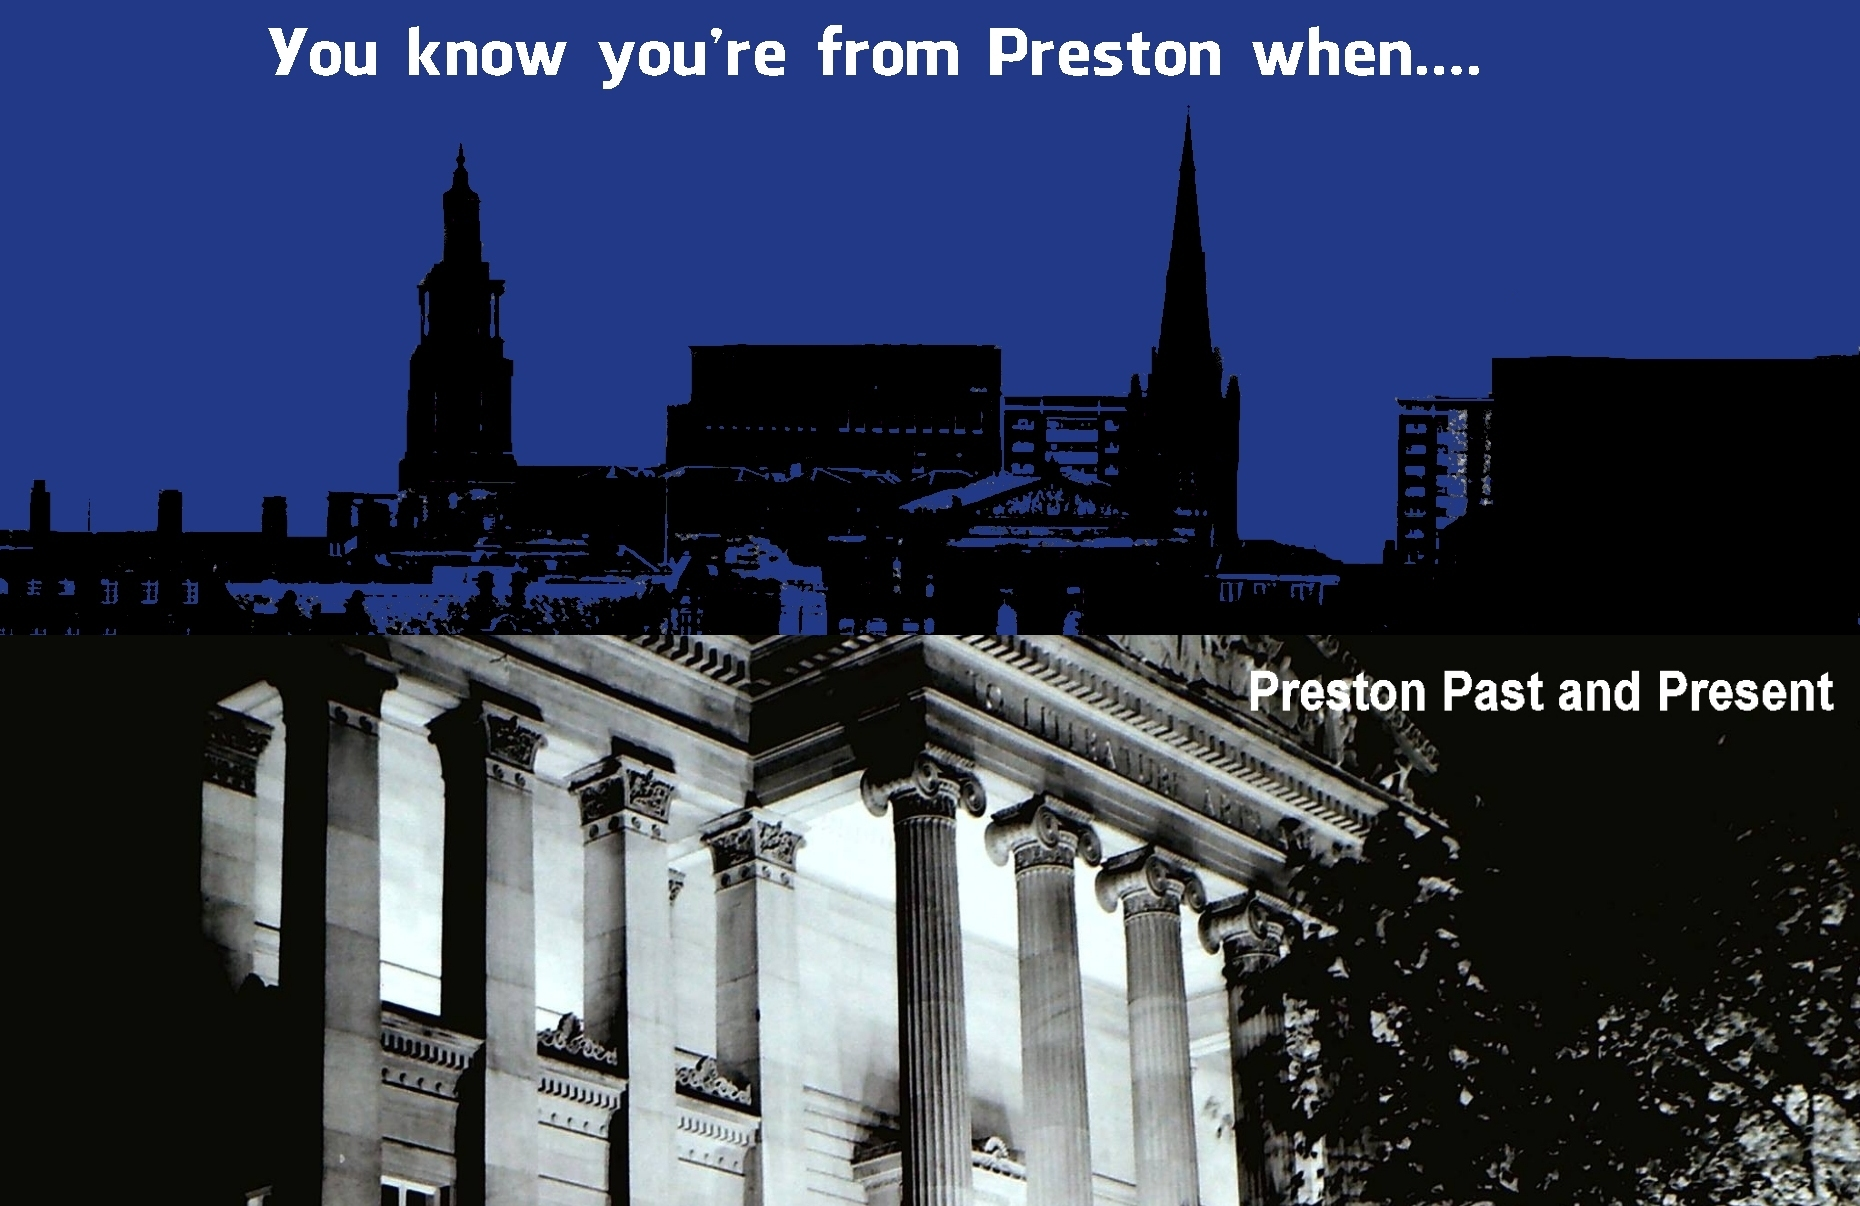 Preston Facebook Groups covers